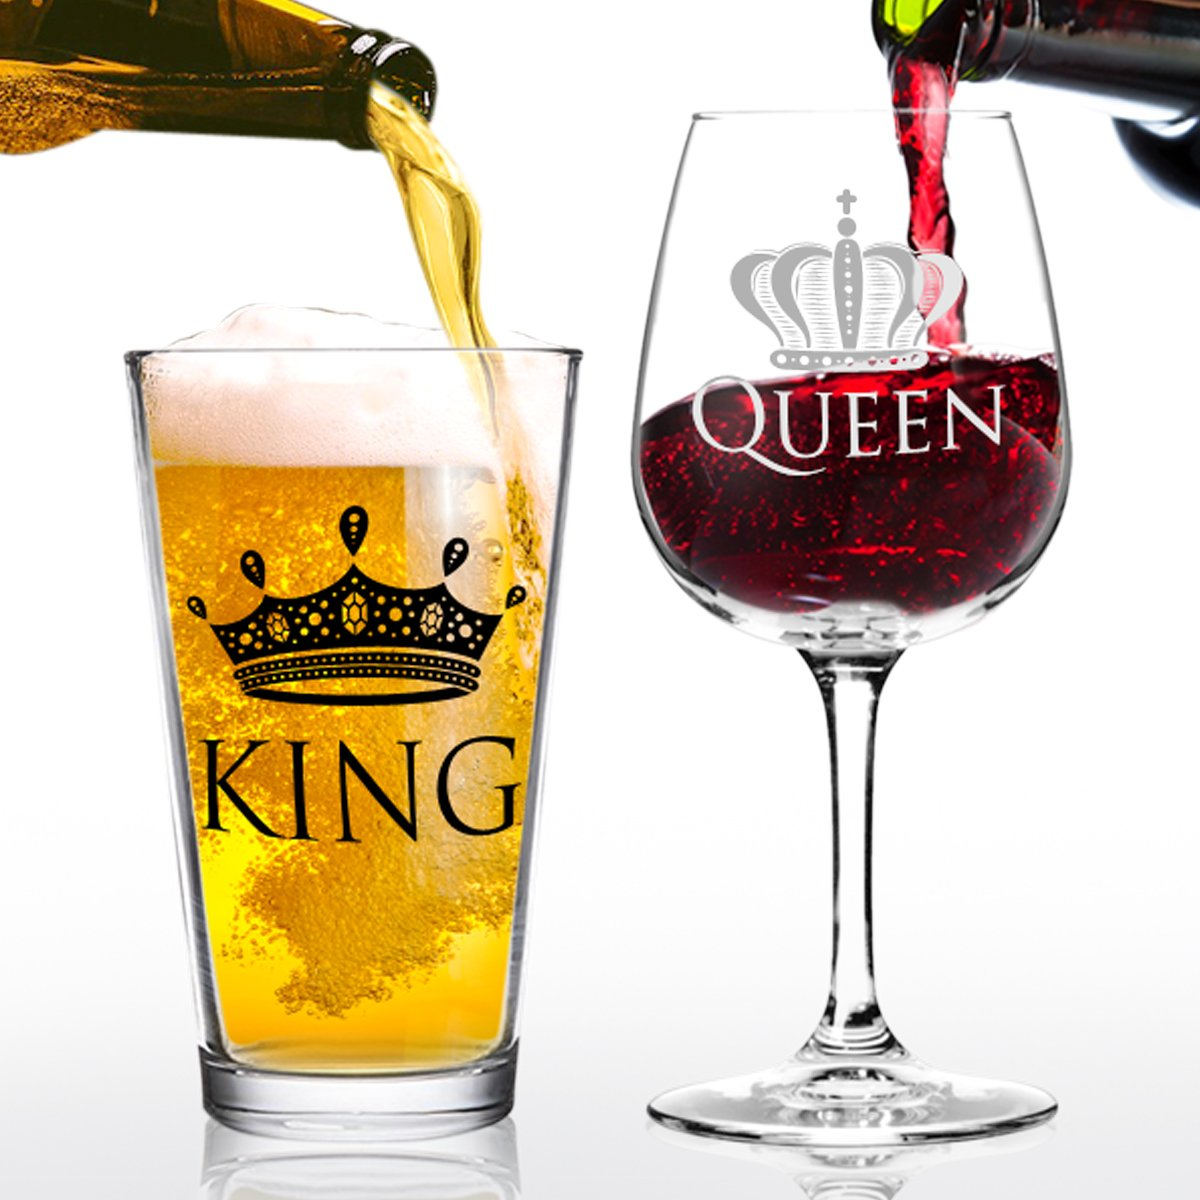 King Beer Queen Wine Glass Gift Set- Gift from Husband to Wife- Present Idea for Bridal Shower, Wedding, Engagement, Anniversary, Newlyweds, and Couples-Him, Her, Mr. Mrs. - Gift for Mom